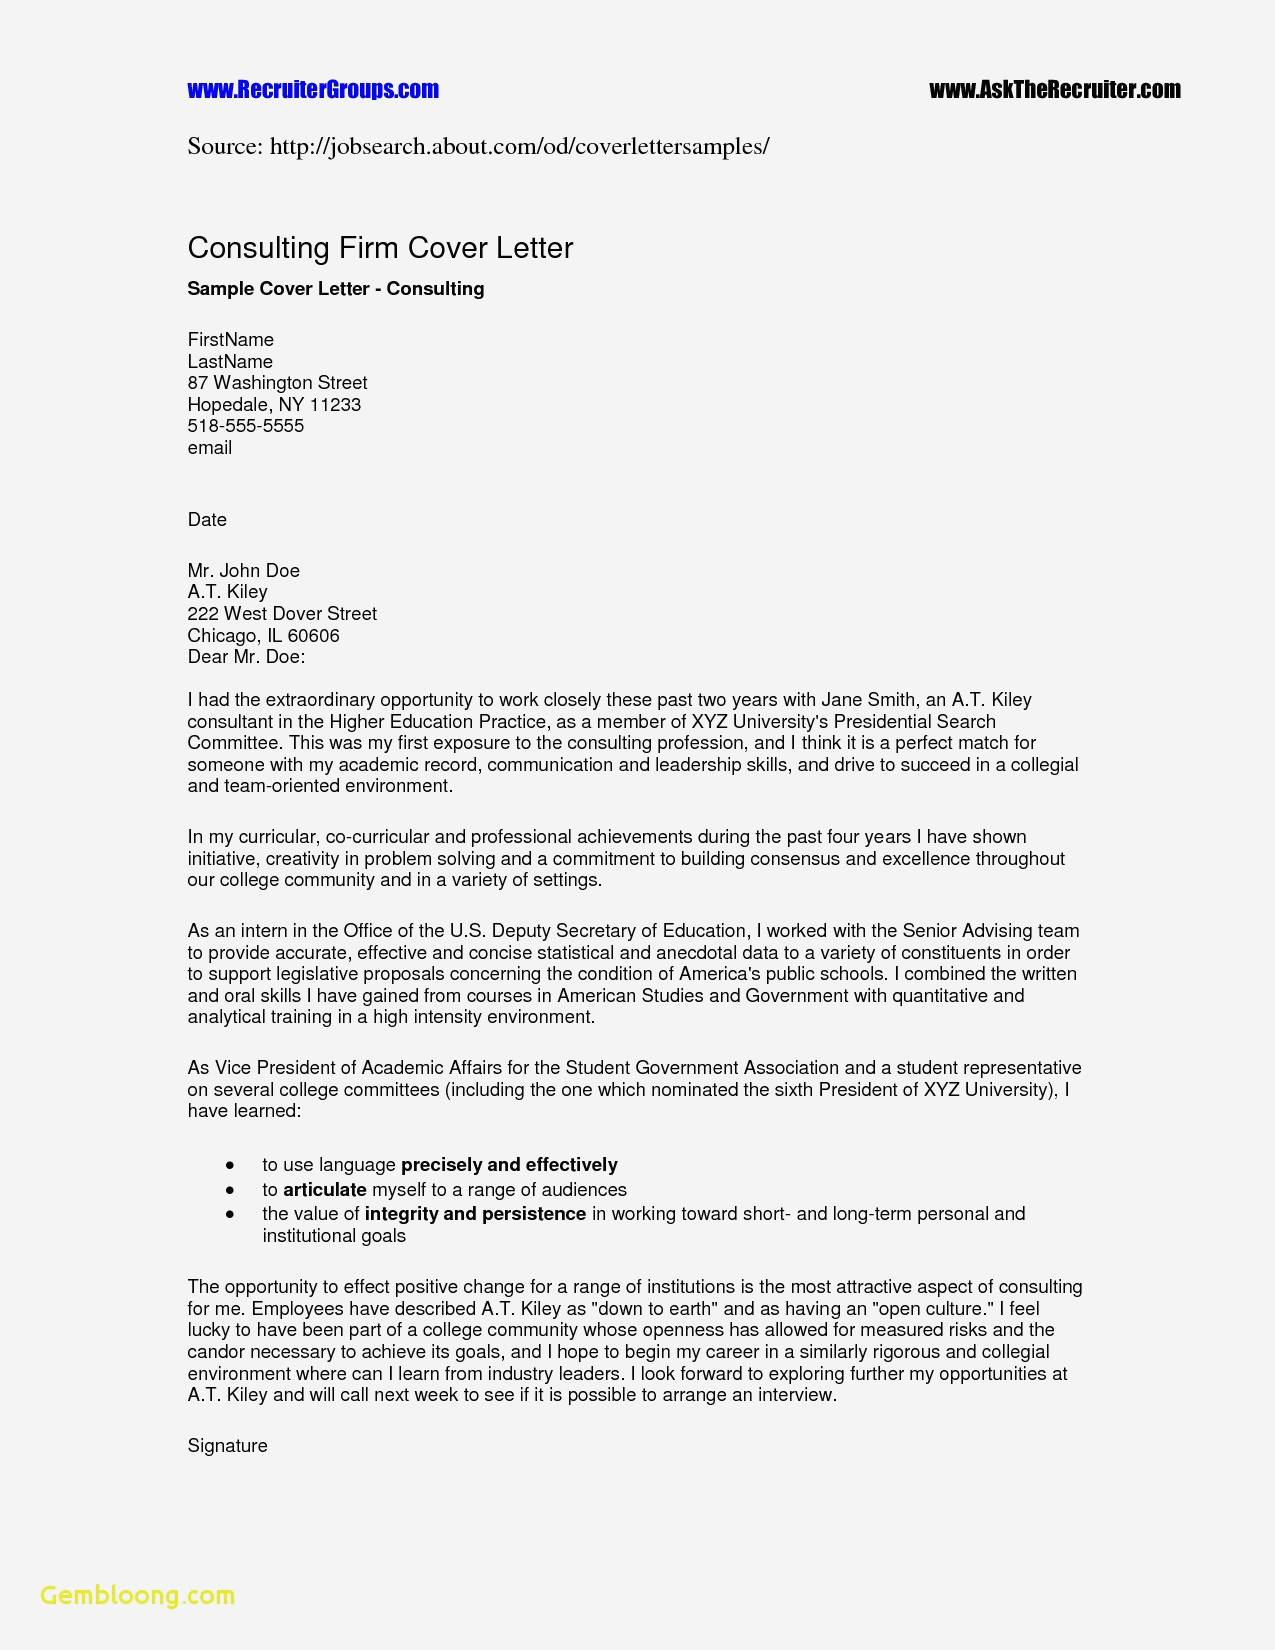 open office resume cover letter template Collection-Bcg Coverr Choice Image Sample within isolution Me Resume Templates Concept Cv Modele Open fice 15-l